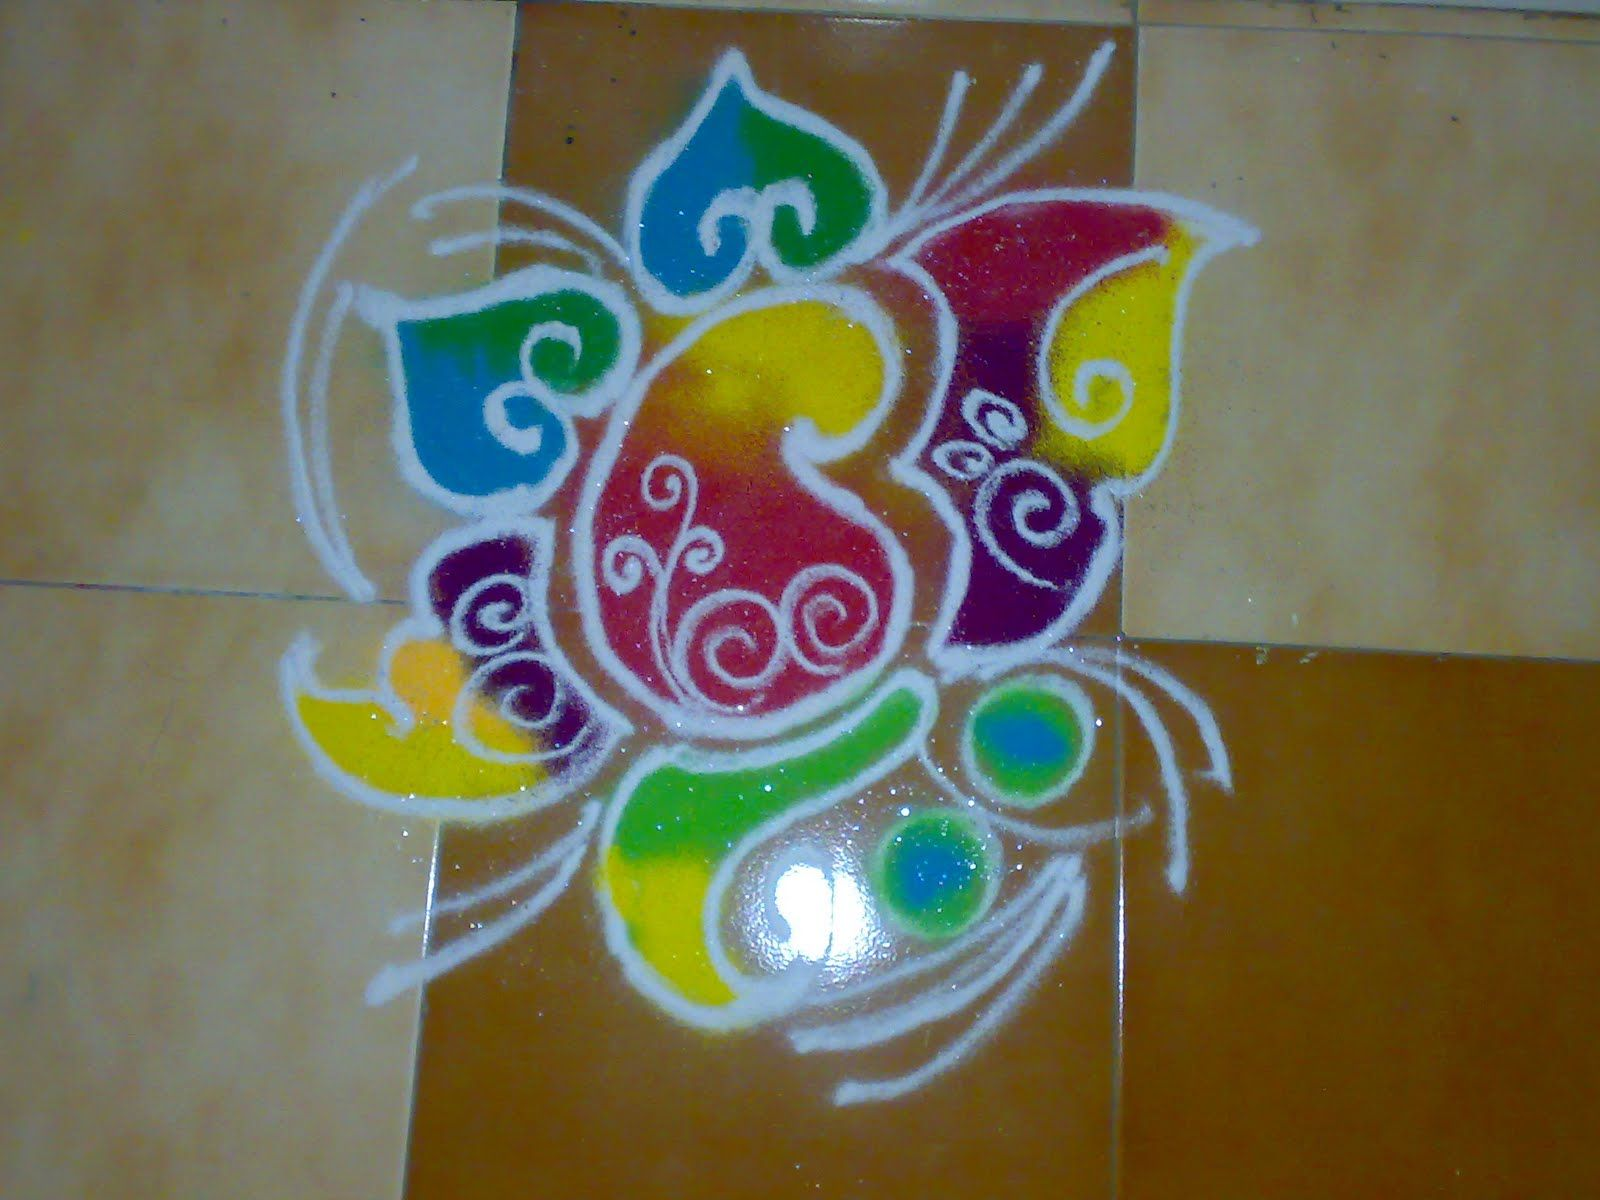 Pin by Kriti Upadhyay on Rangoli designs(made by colours ... for Rangoli Designs For Competition With Themes Colour  54lyp